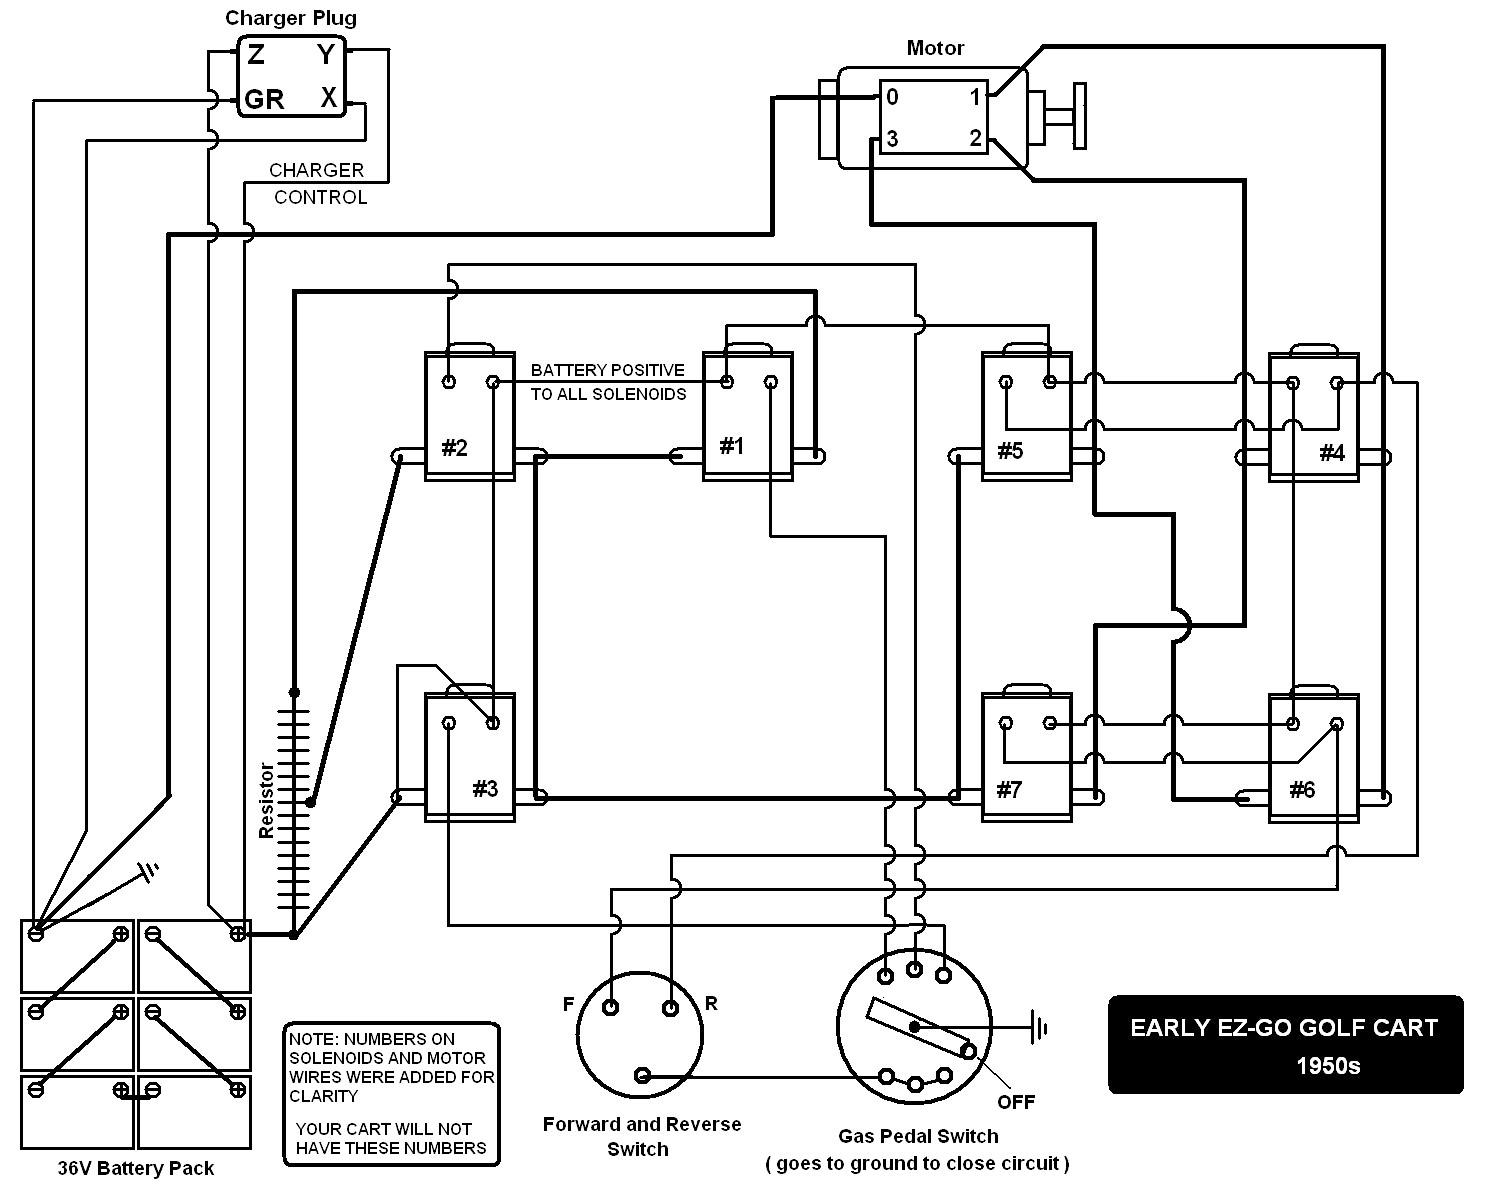 Ez Go 48 Volt Golf Cart Wiring Diagram from wholefoodsonabudget.com